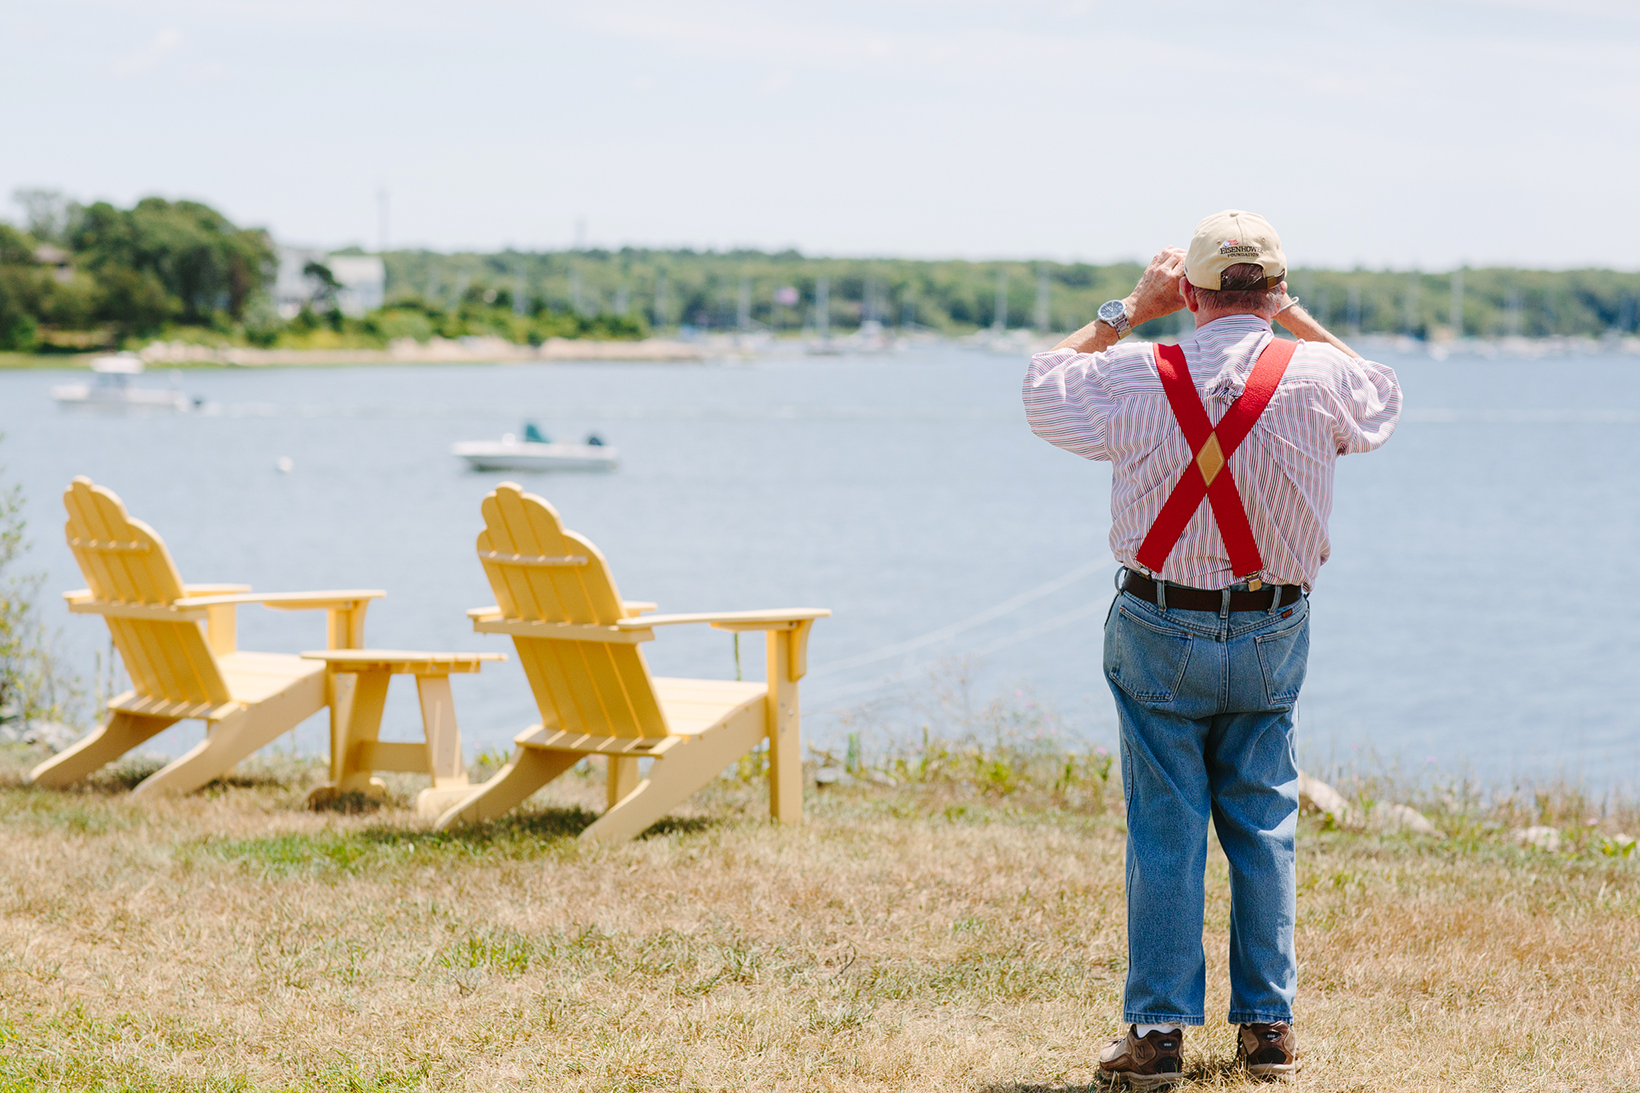 Cape Cod wedding blog photo from Stacey Hedman | Photography about Bourne Farm Wedding with Jessie and Pete